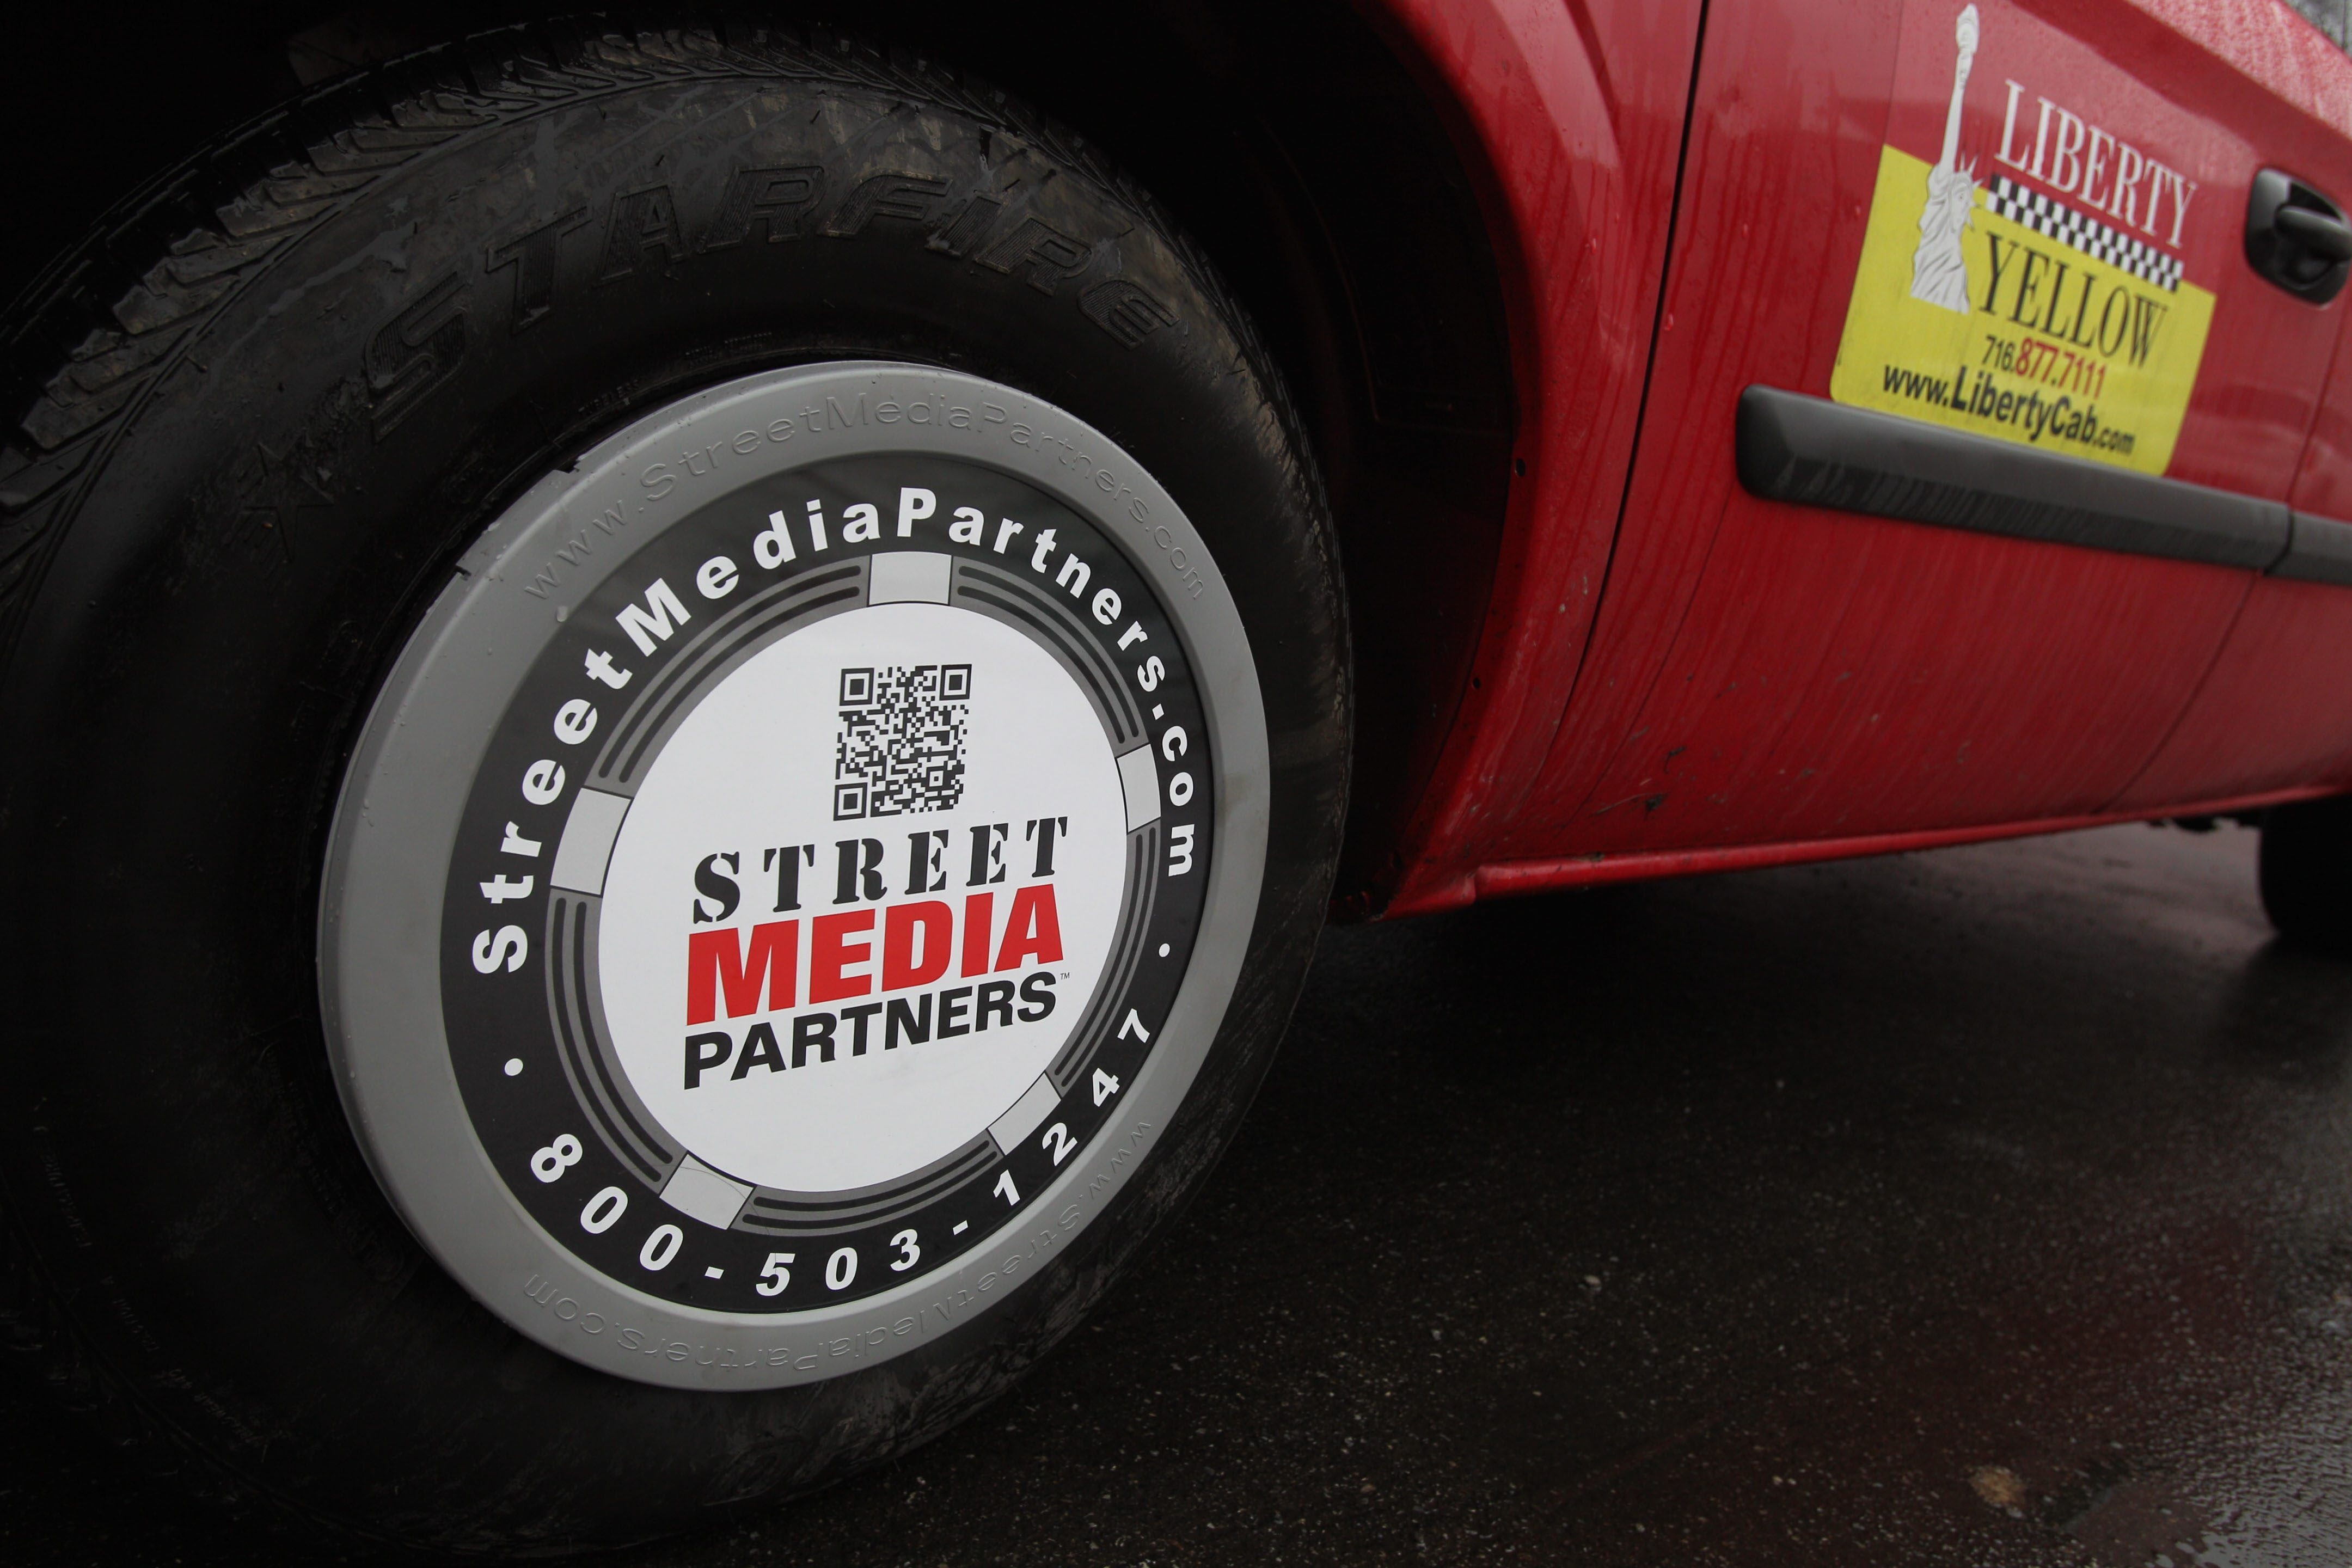 Street Media Partners designed a type of advertising that goes on taxicab hubcaps and glows at night. Buffalo's Liberty Cab will give the technology a trial.